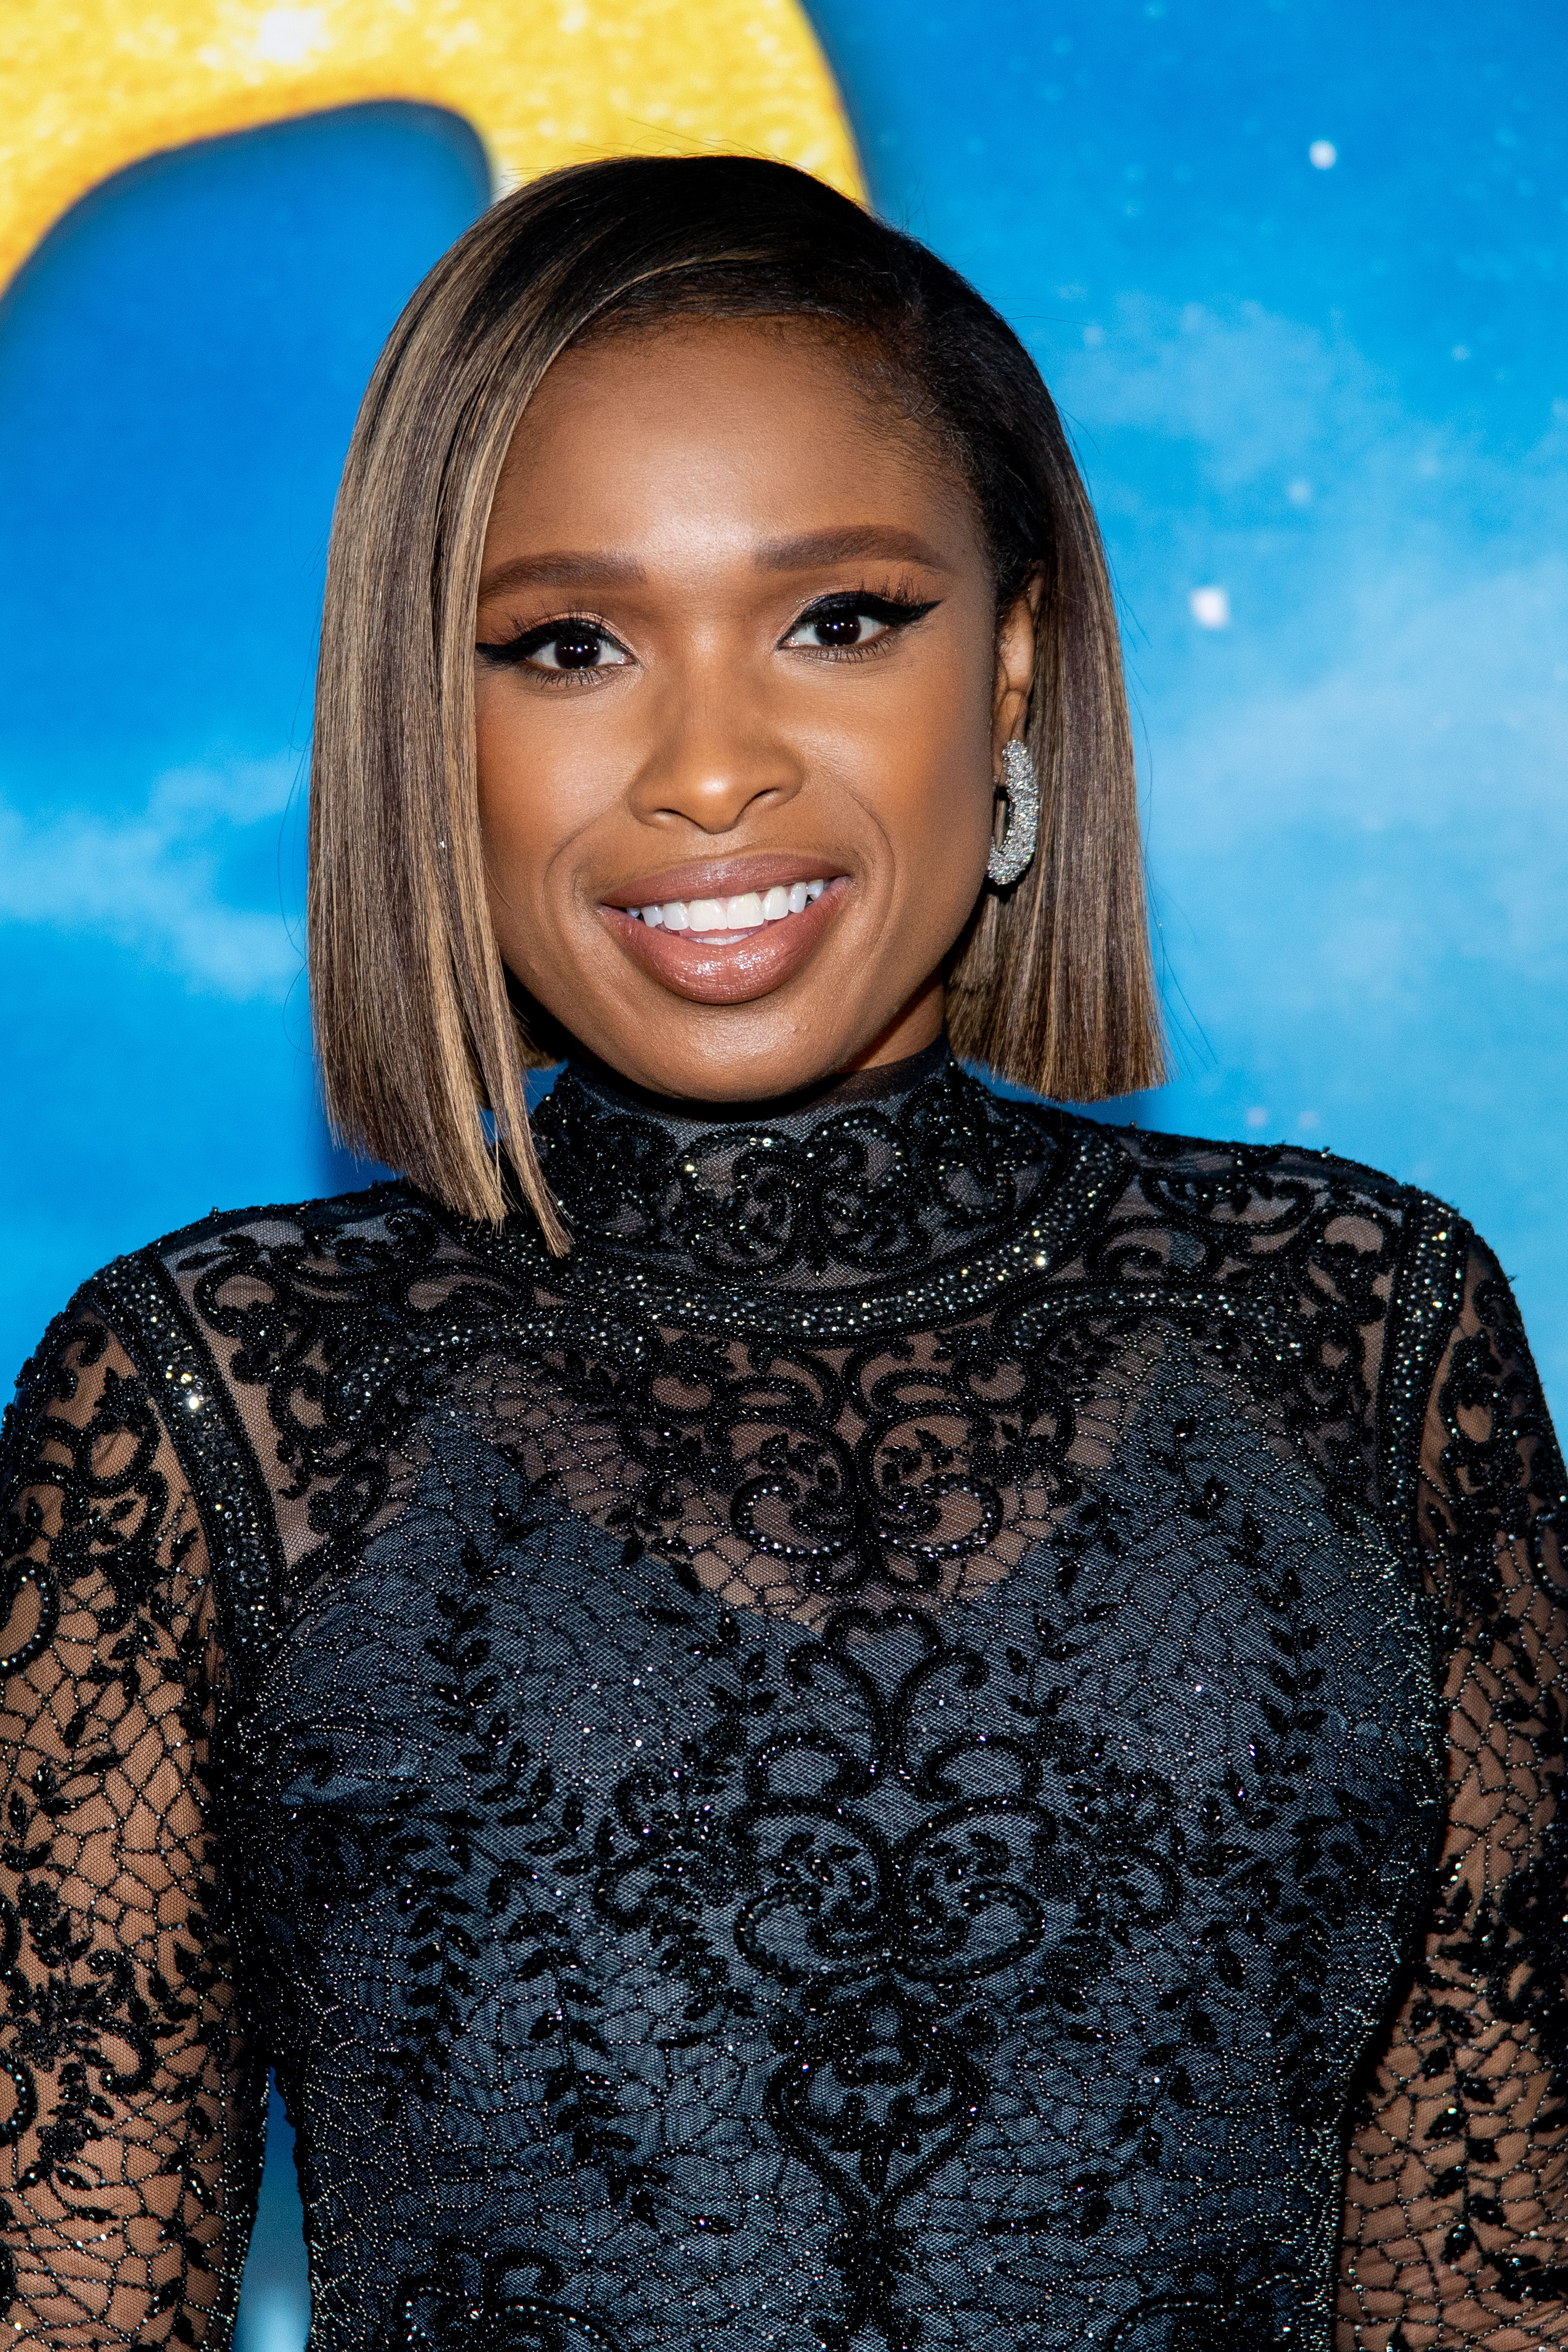 """Image Credits: Getty Images /  Jennifer Hudson attends the """"Cats"""" World Premiere at Alice Tully Hall, Lincoln Center"""